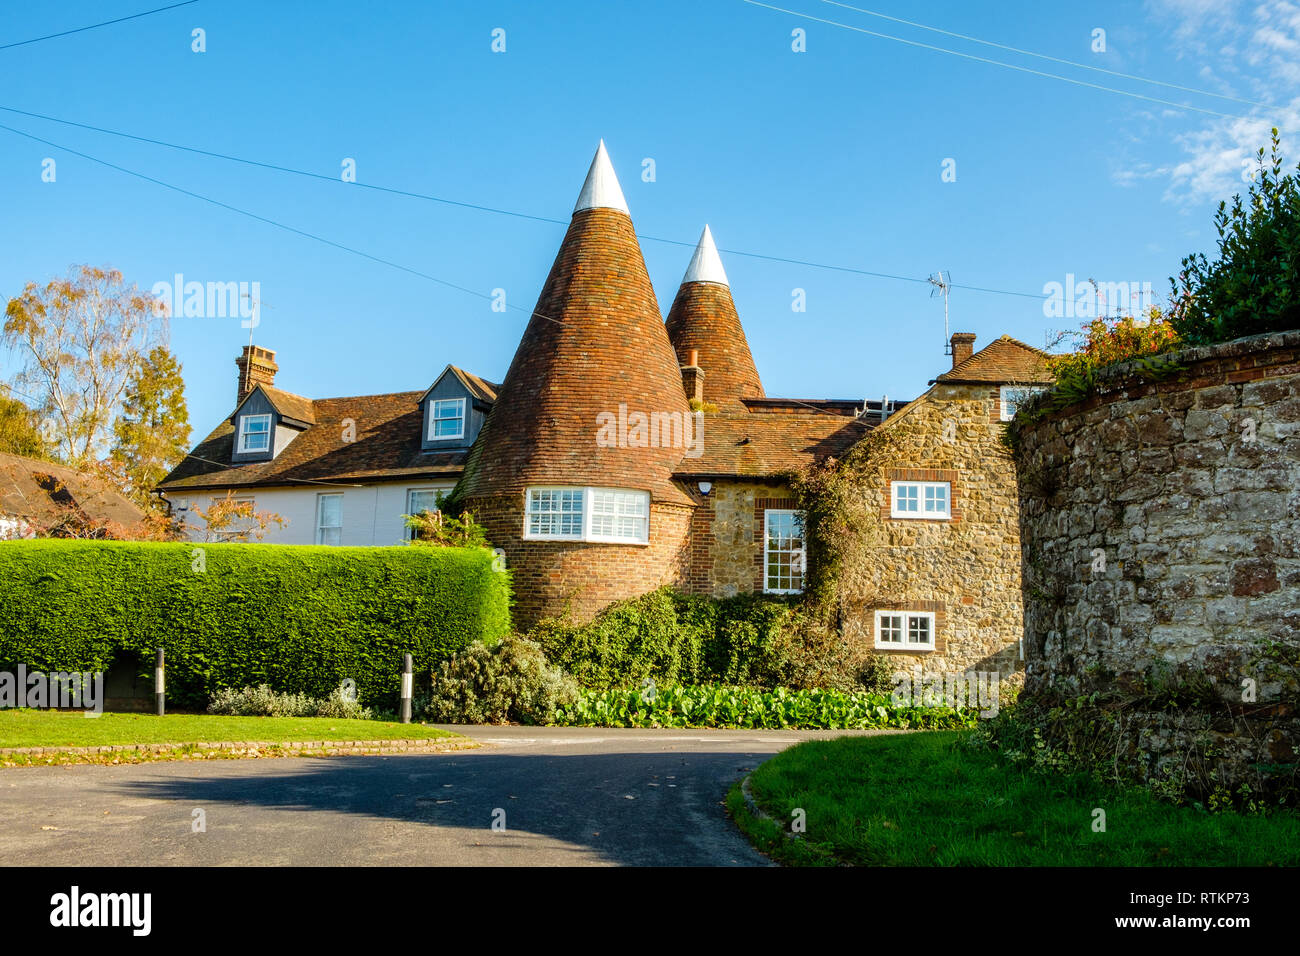 Converted Oast House, High Cross Road, Ivy Hatch, Kent - Stock Image